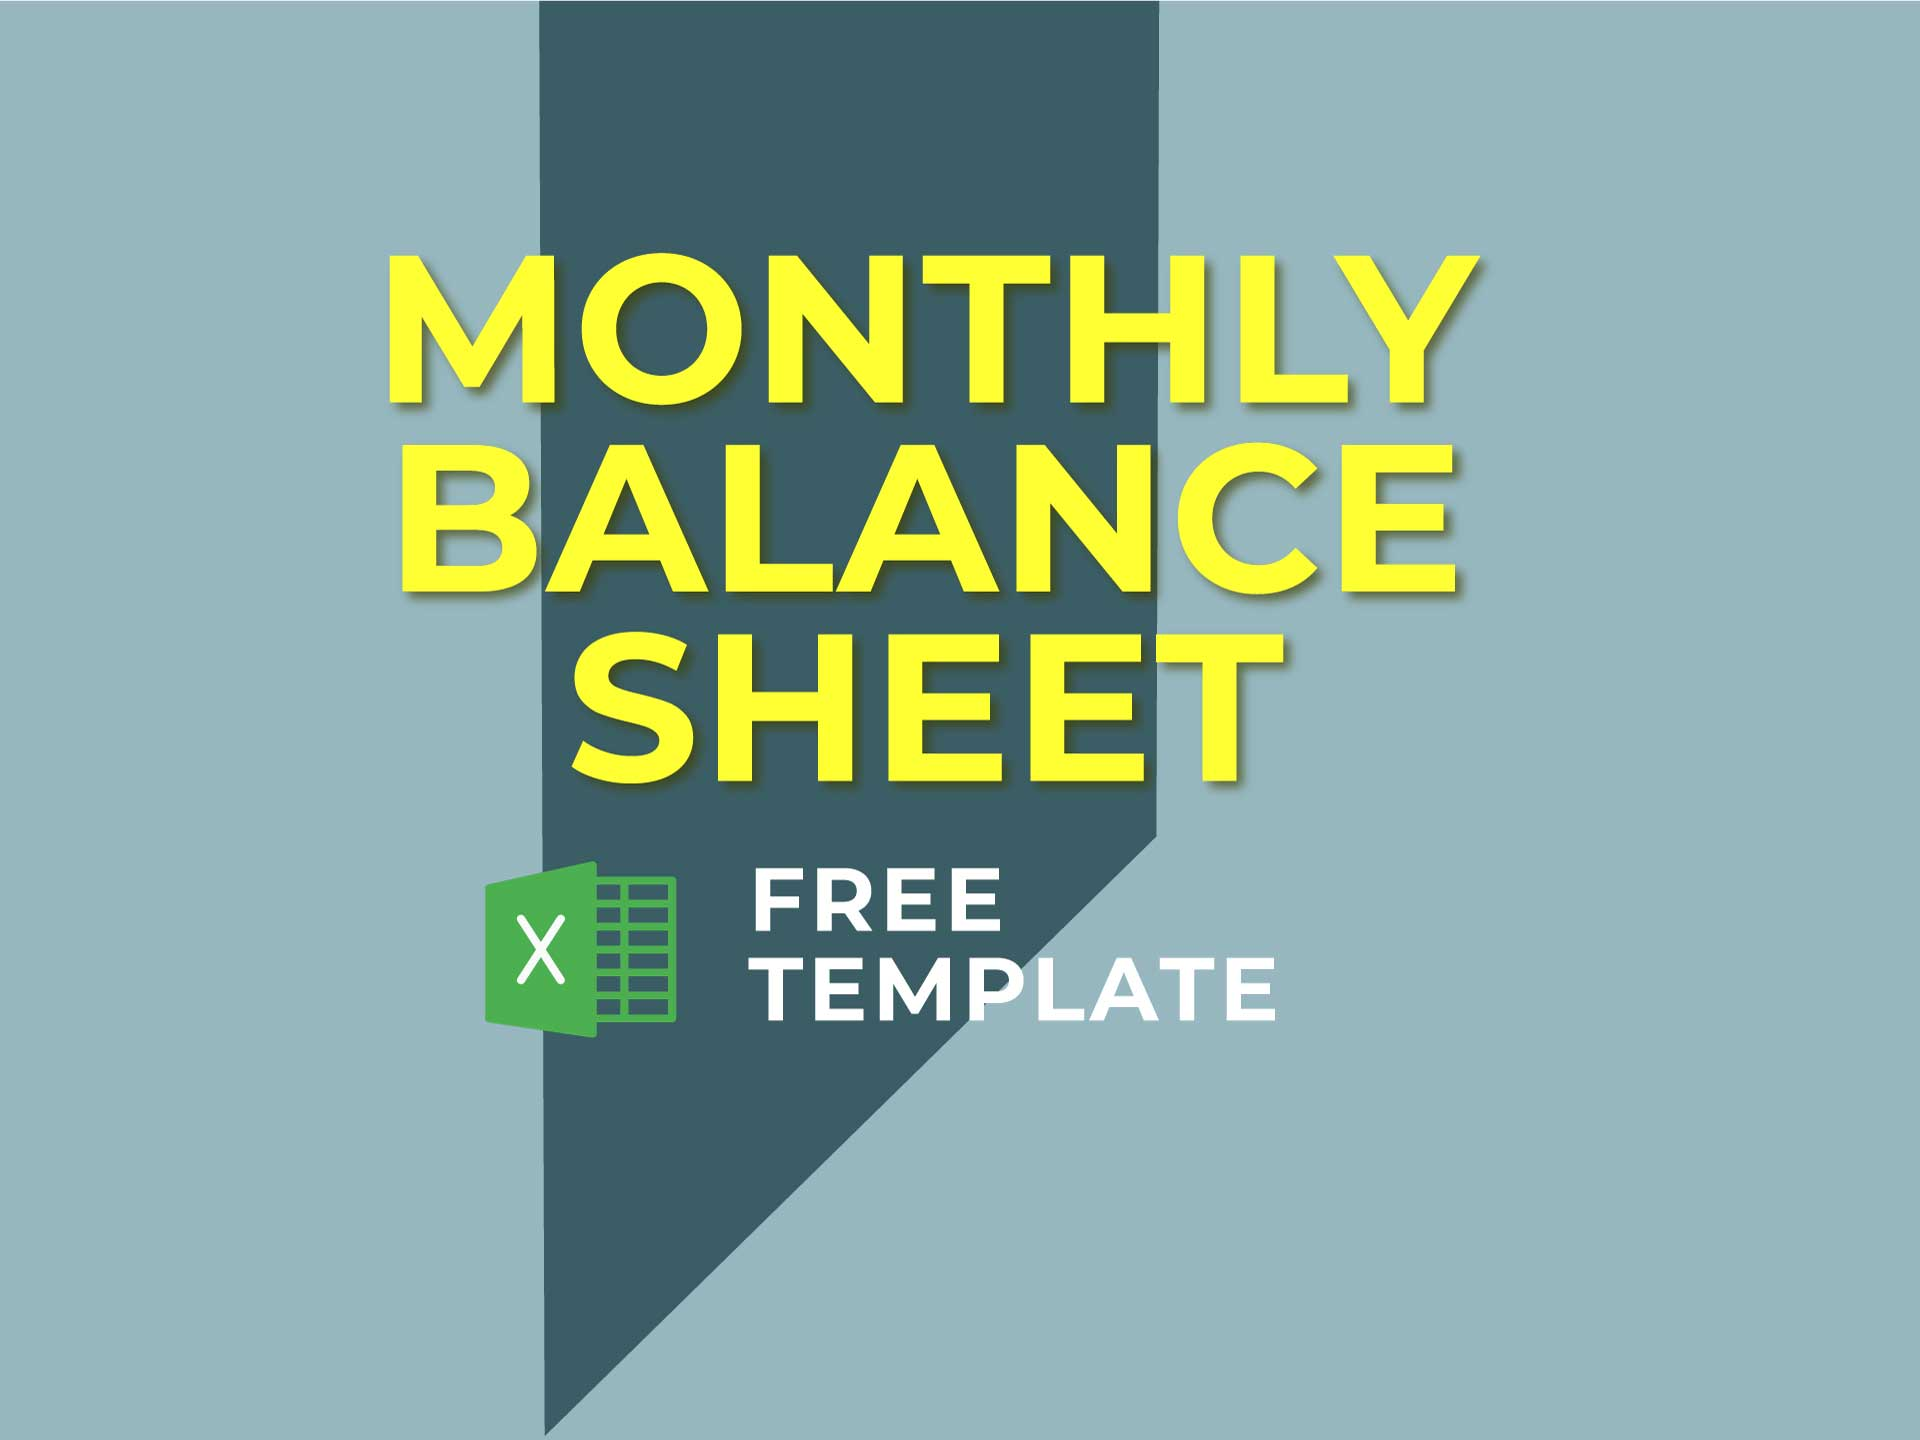 Monthly Balance Sheet